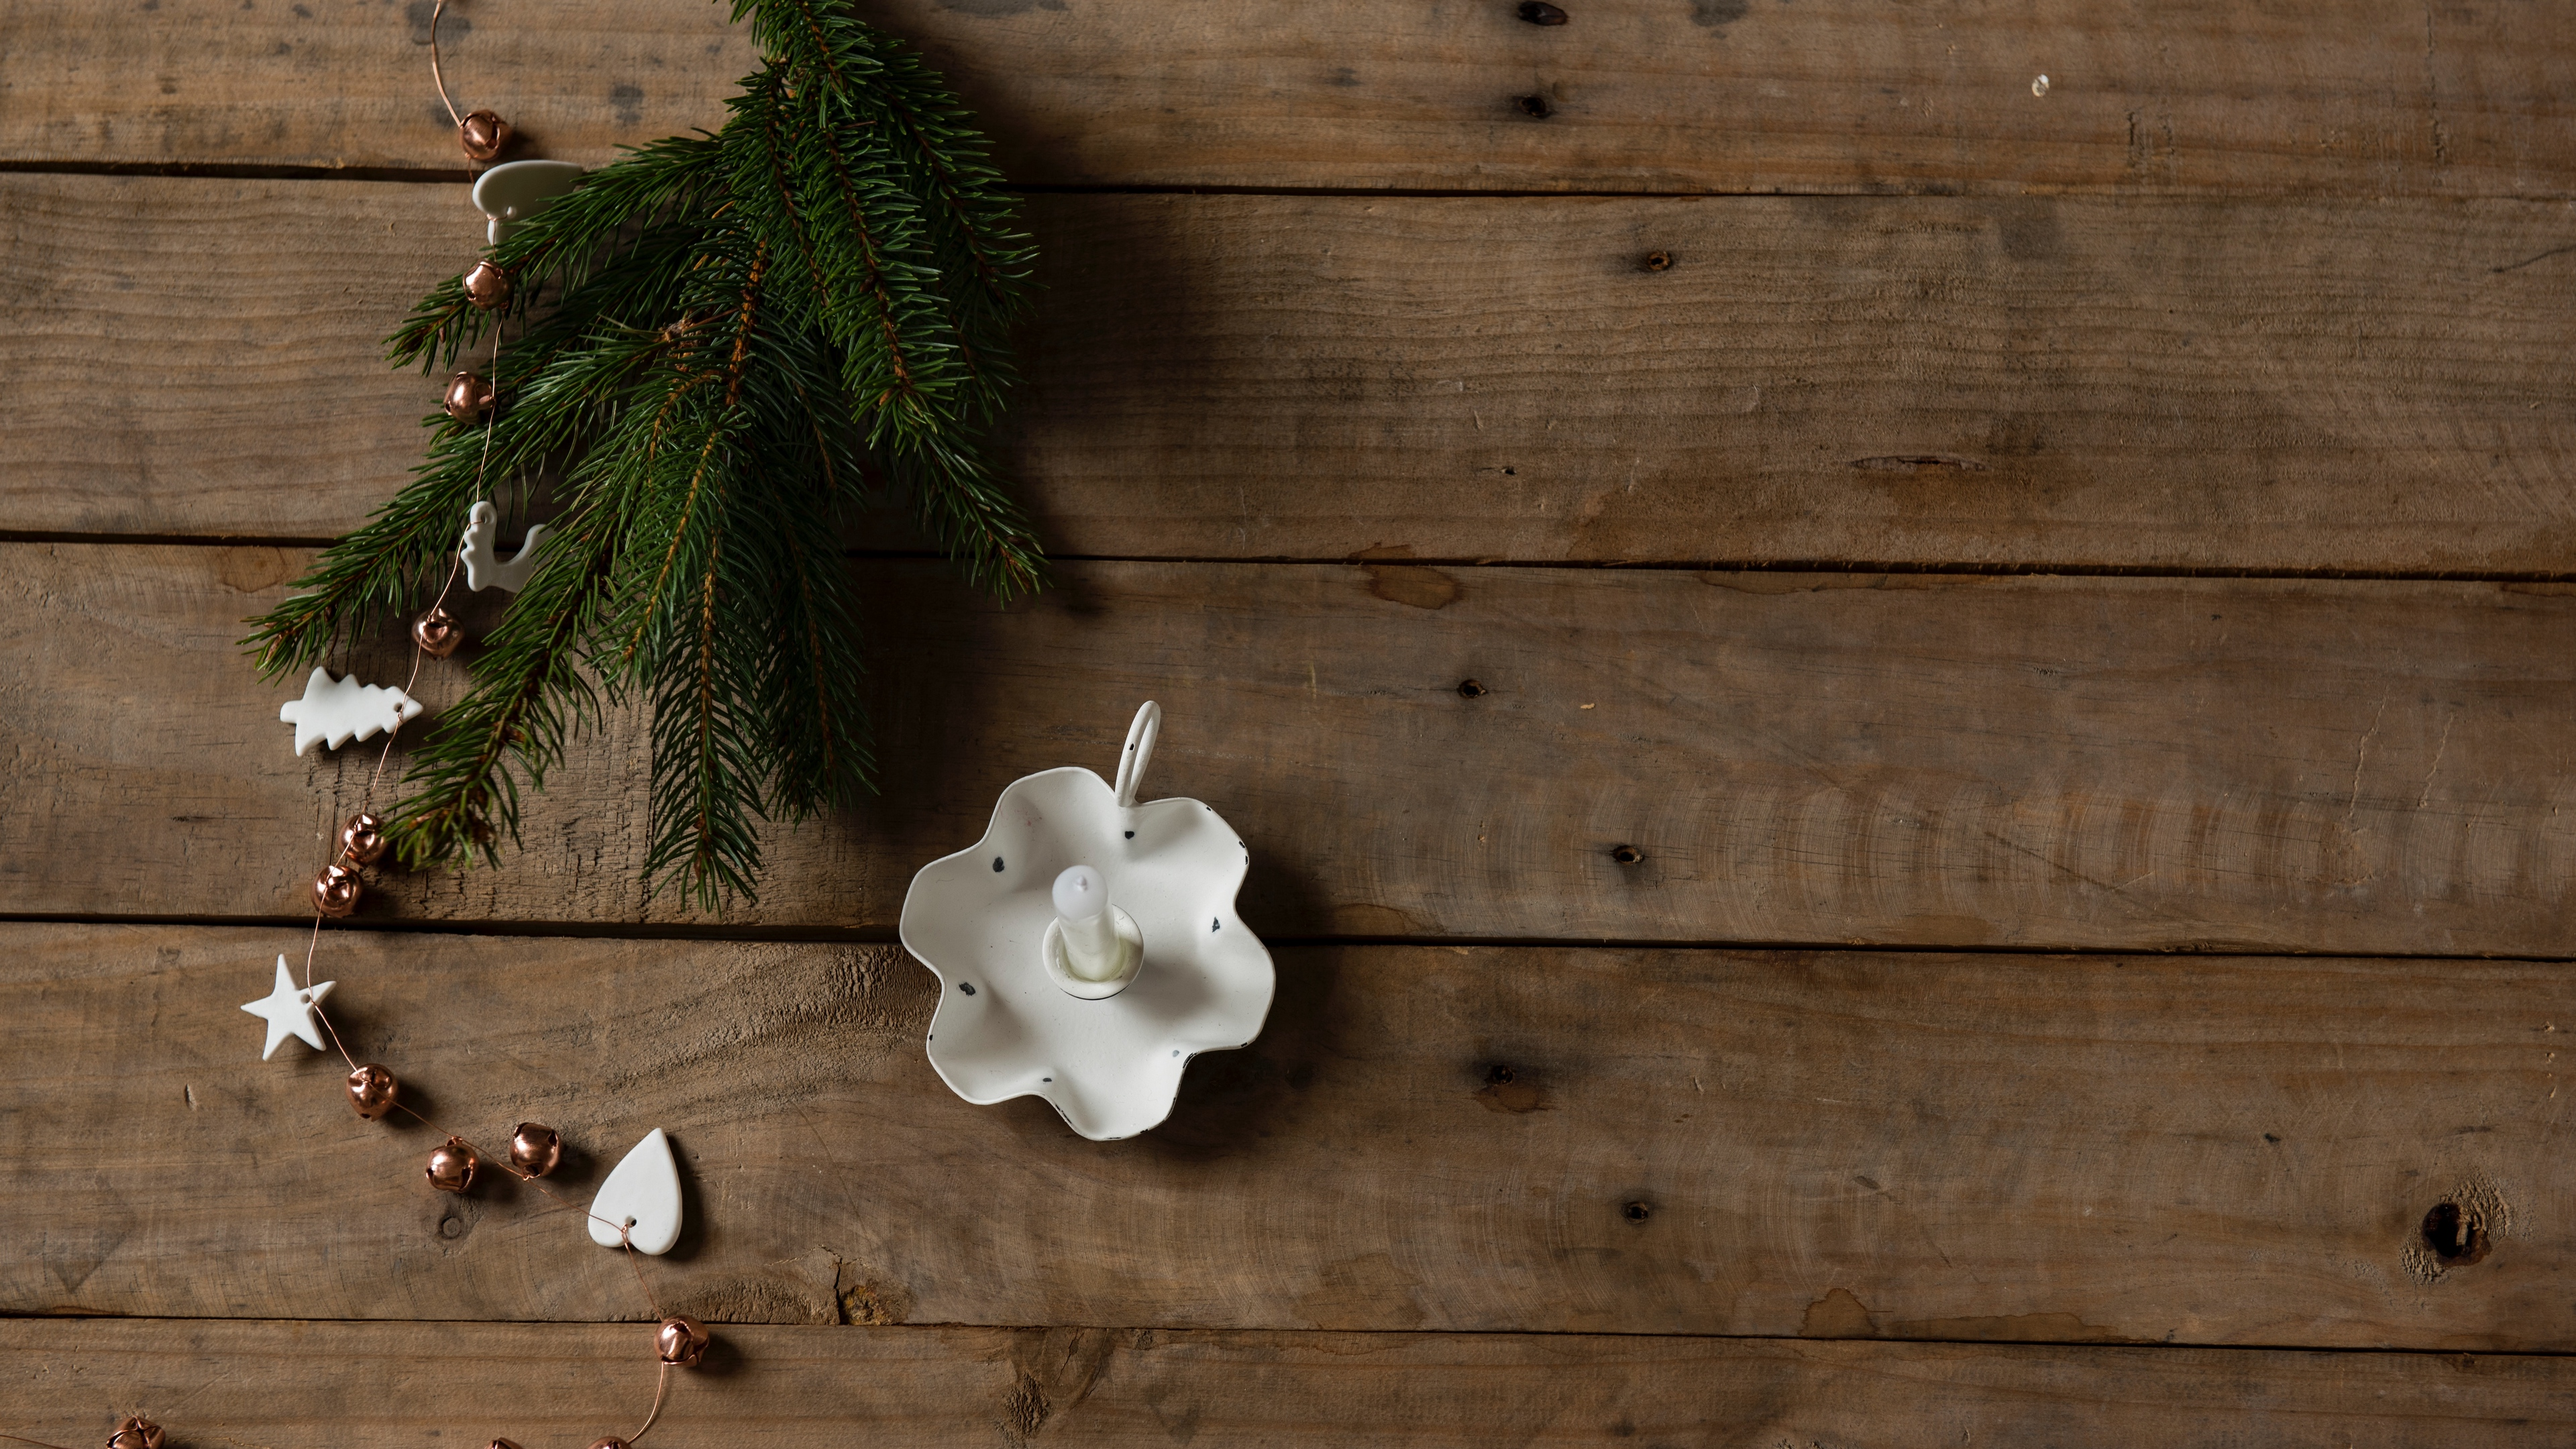 spruce candle decoration christmas 4k 1538344566 - spruce, candle, decoration, christmas 4k - spruce, decoration, candle